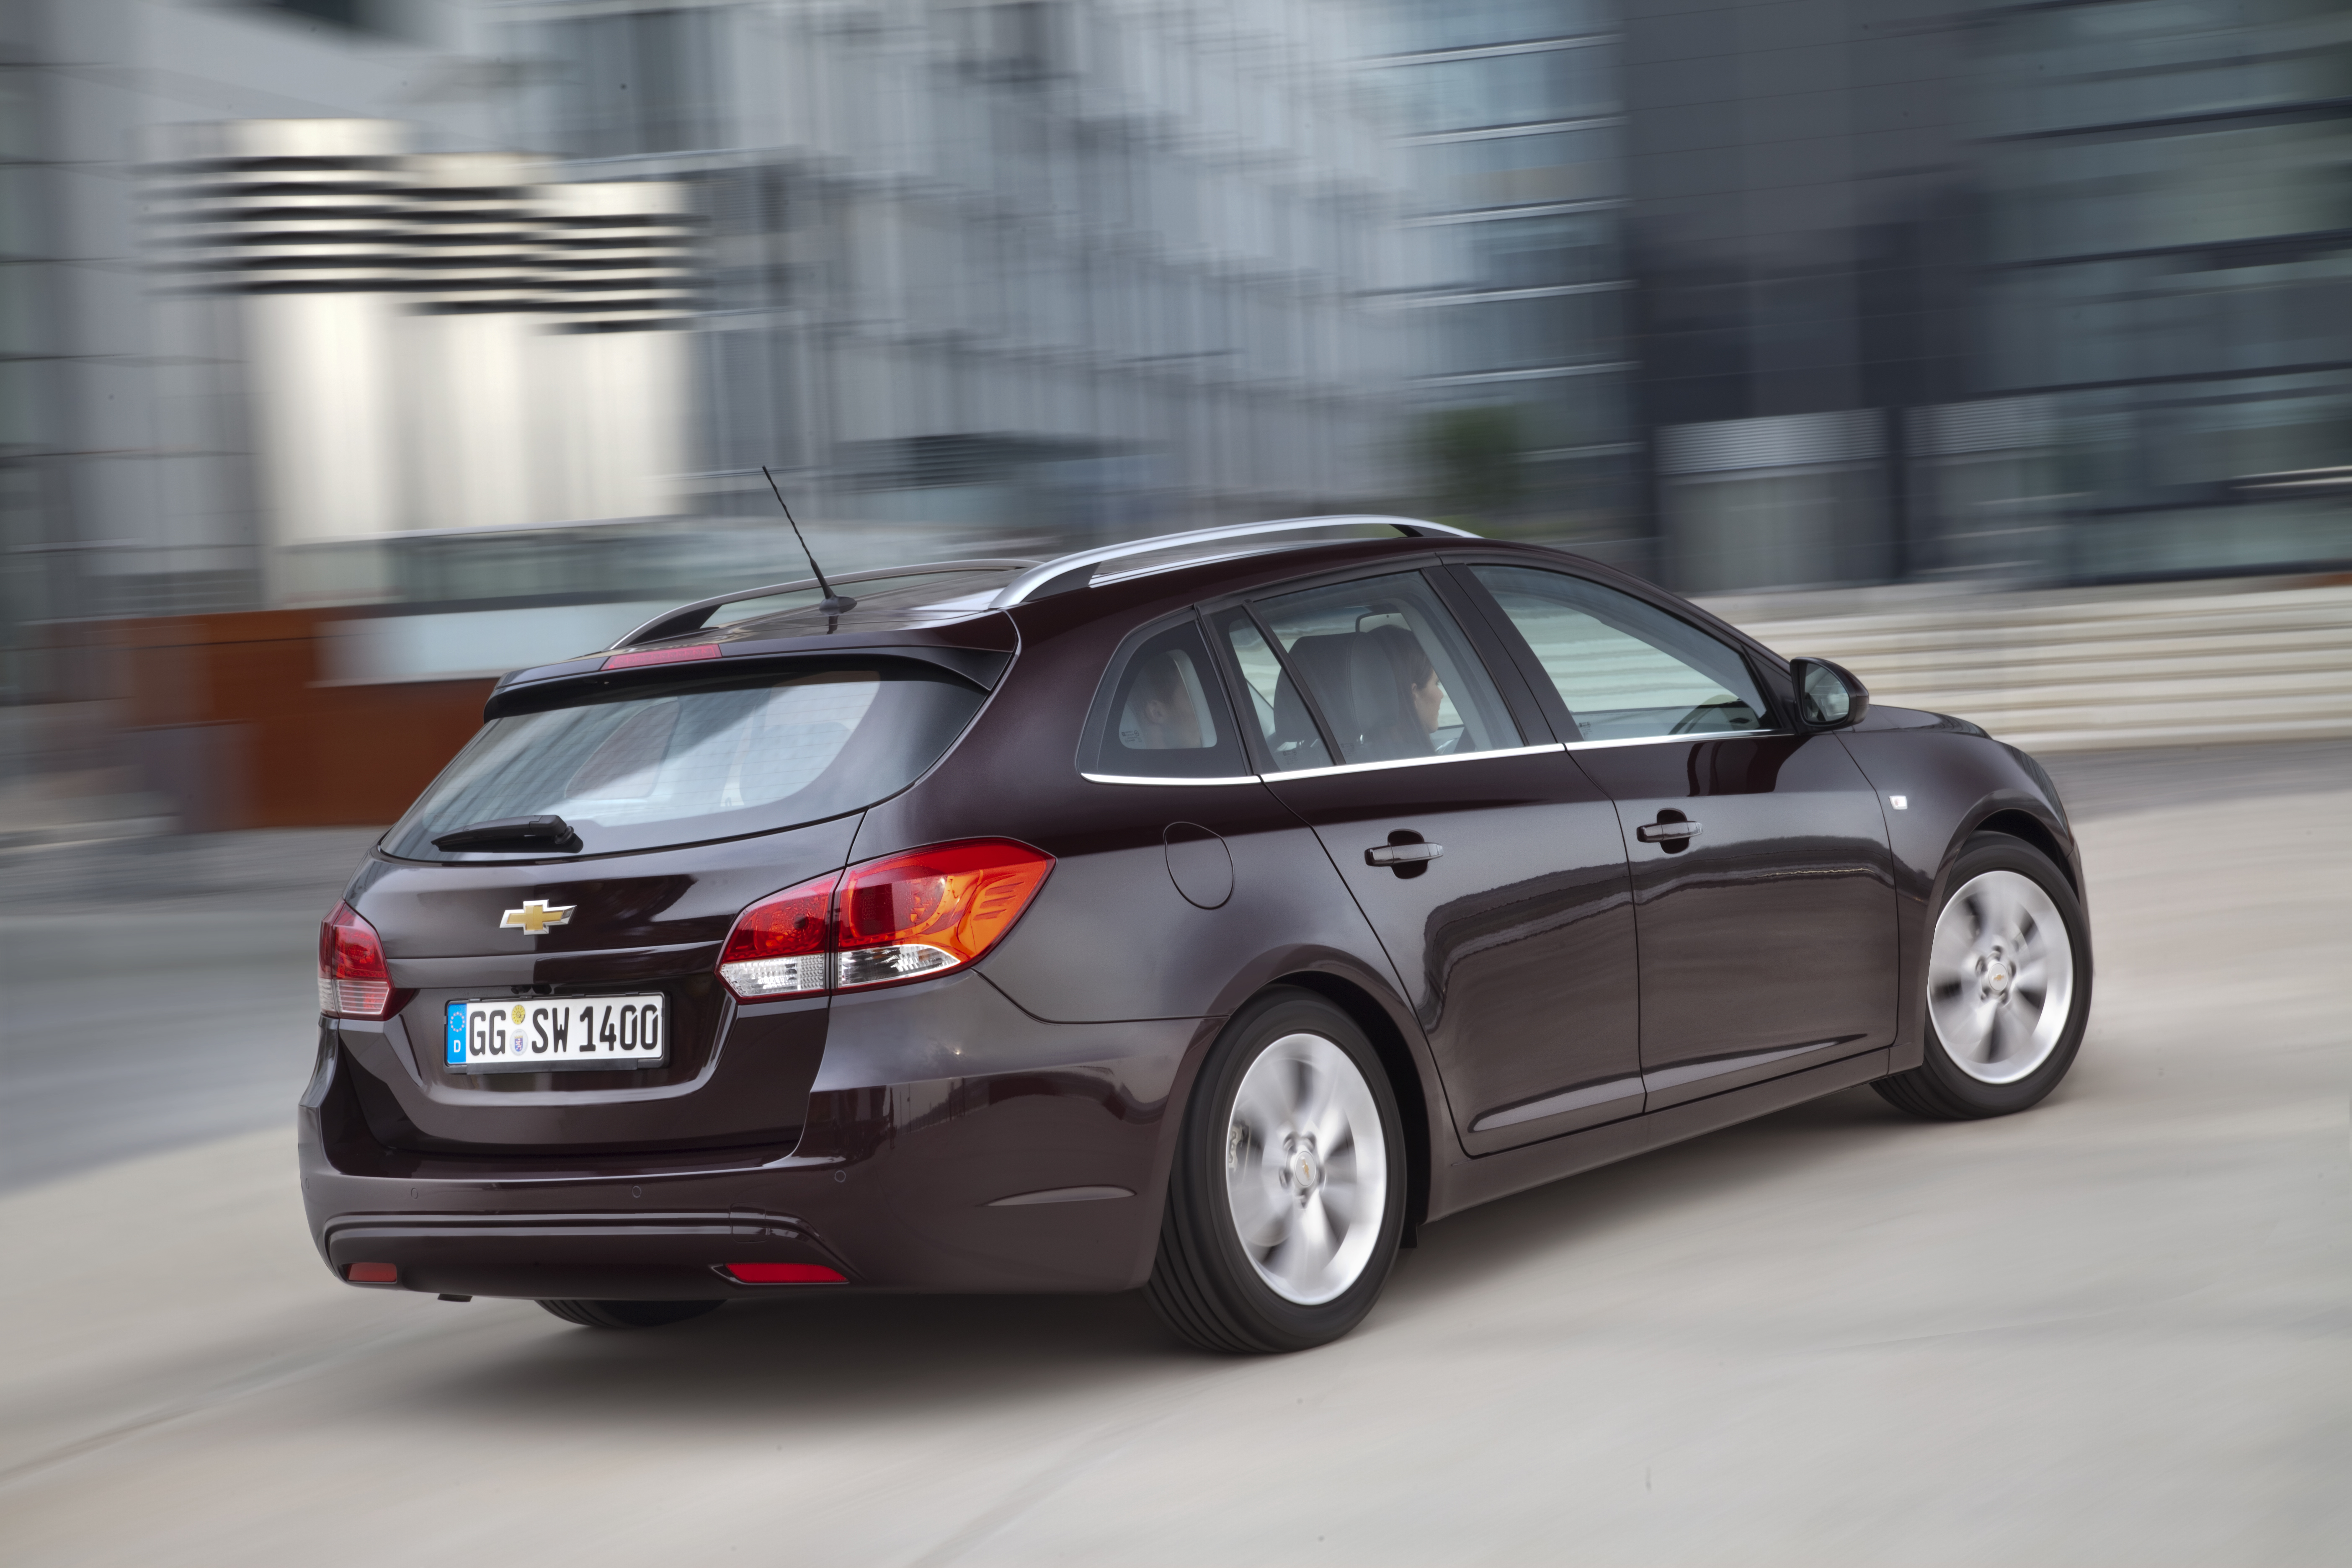 Chevrolet Cruze Station Wagon exterior specifications